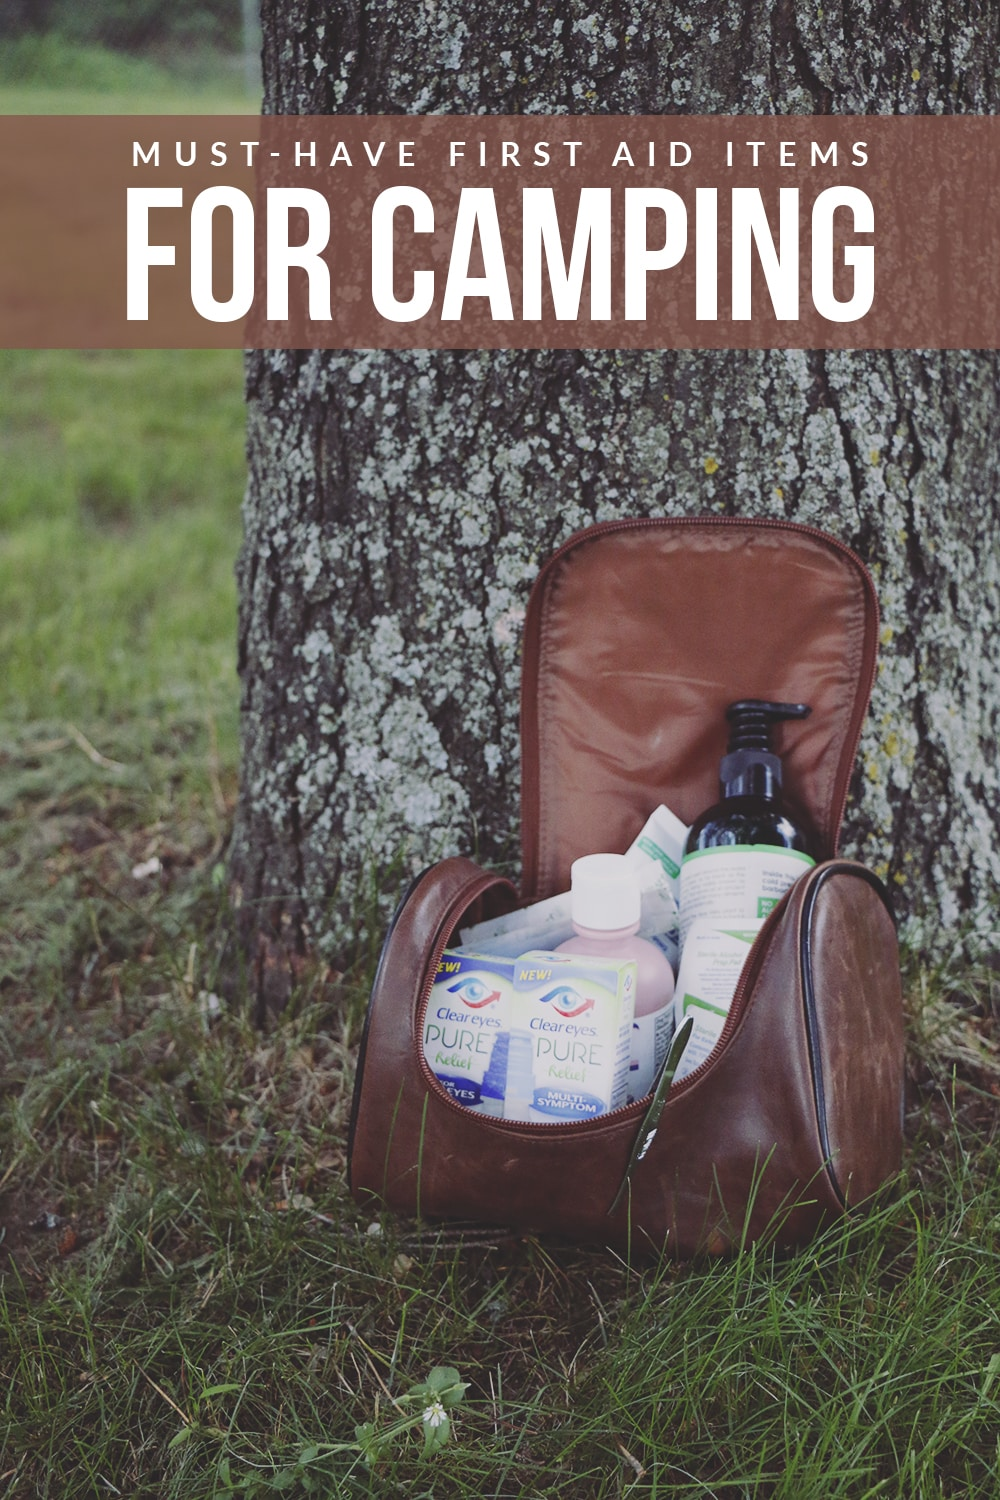 Not sure what to bring along for first-aid care on your next camping trip? These must have first-aid items for camping are a great place to start!